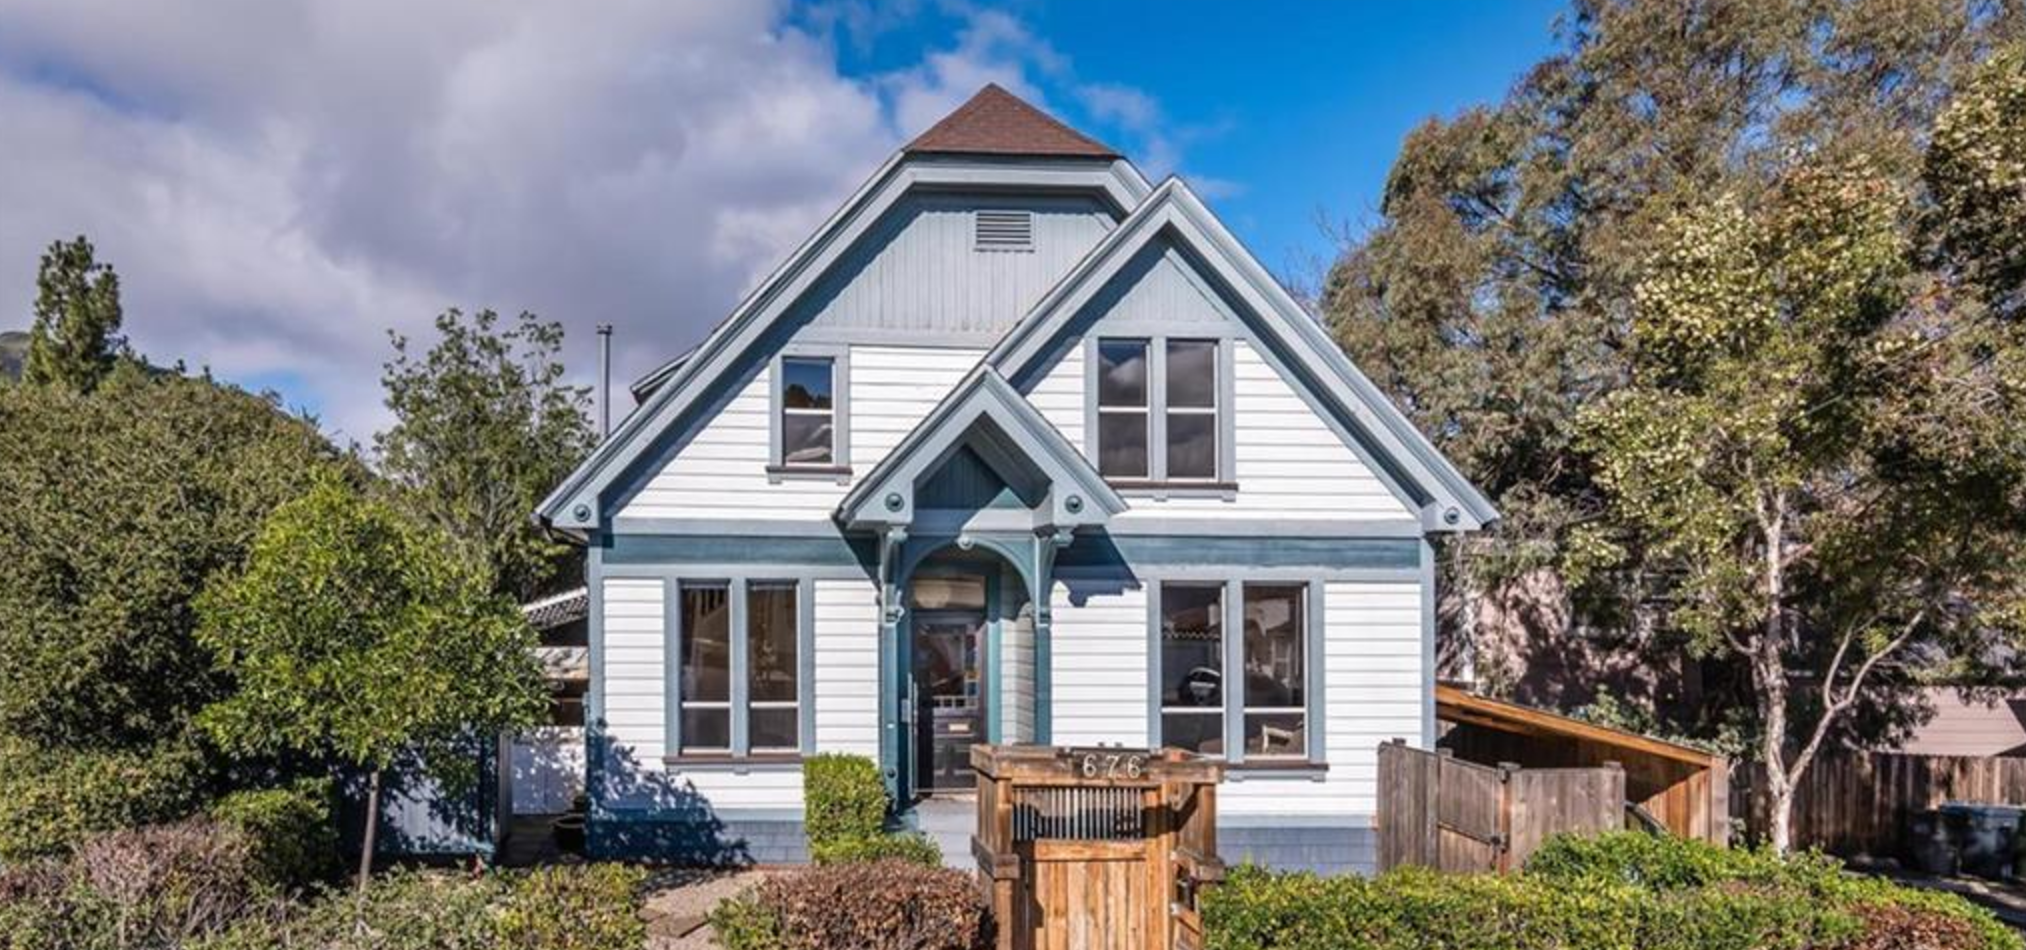 676 PISMO STREET - SAN LUIS OBISPO   This 4 bedroom 2 bath home sold in 36 days for $880,000 less than the asking price of $919,000 on 05/03/17. This property did not have a separate living unit but did have an additional kitchen upstairs on the far wall of the upstairs living room. An interesting option representing a $396.75 per square foot cost for a 5,201 sq. ft. lot in downtown.